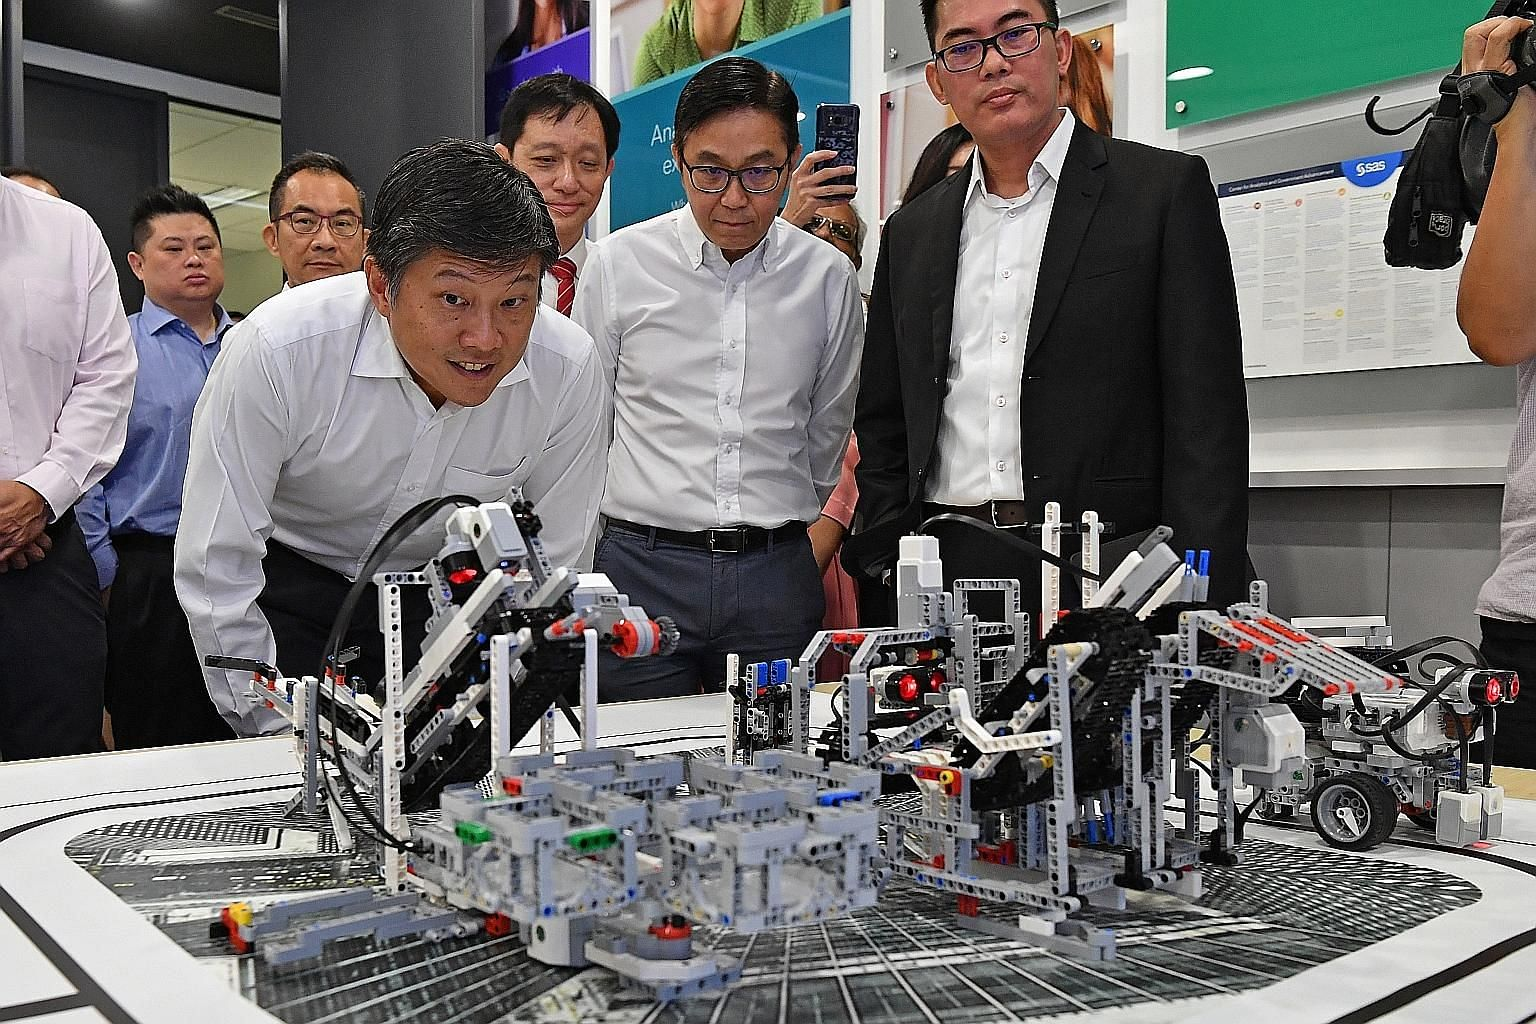 NTUC secretary-general Ng Chee Meng taking a close look at a demonstration of advanced analytics capabilities at the SAS Institute. On his left are Mr Ng Tiong Gee, president of the Tech Talent Assembly; and Mr Randy Goh (in coat), managing director